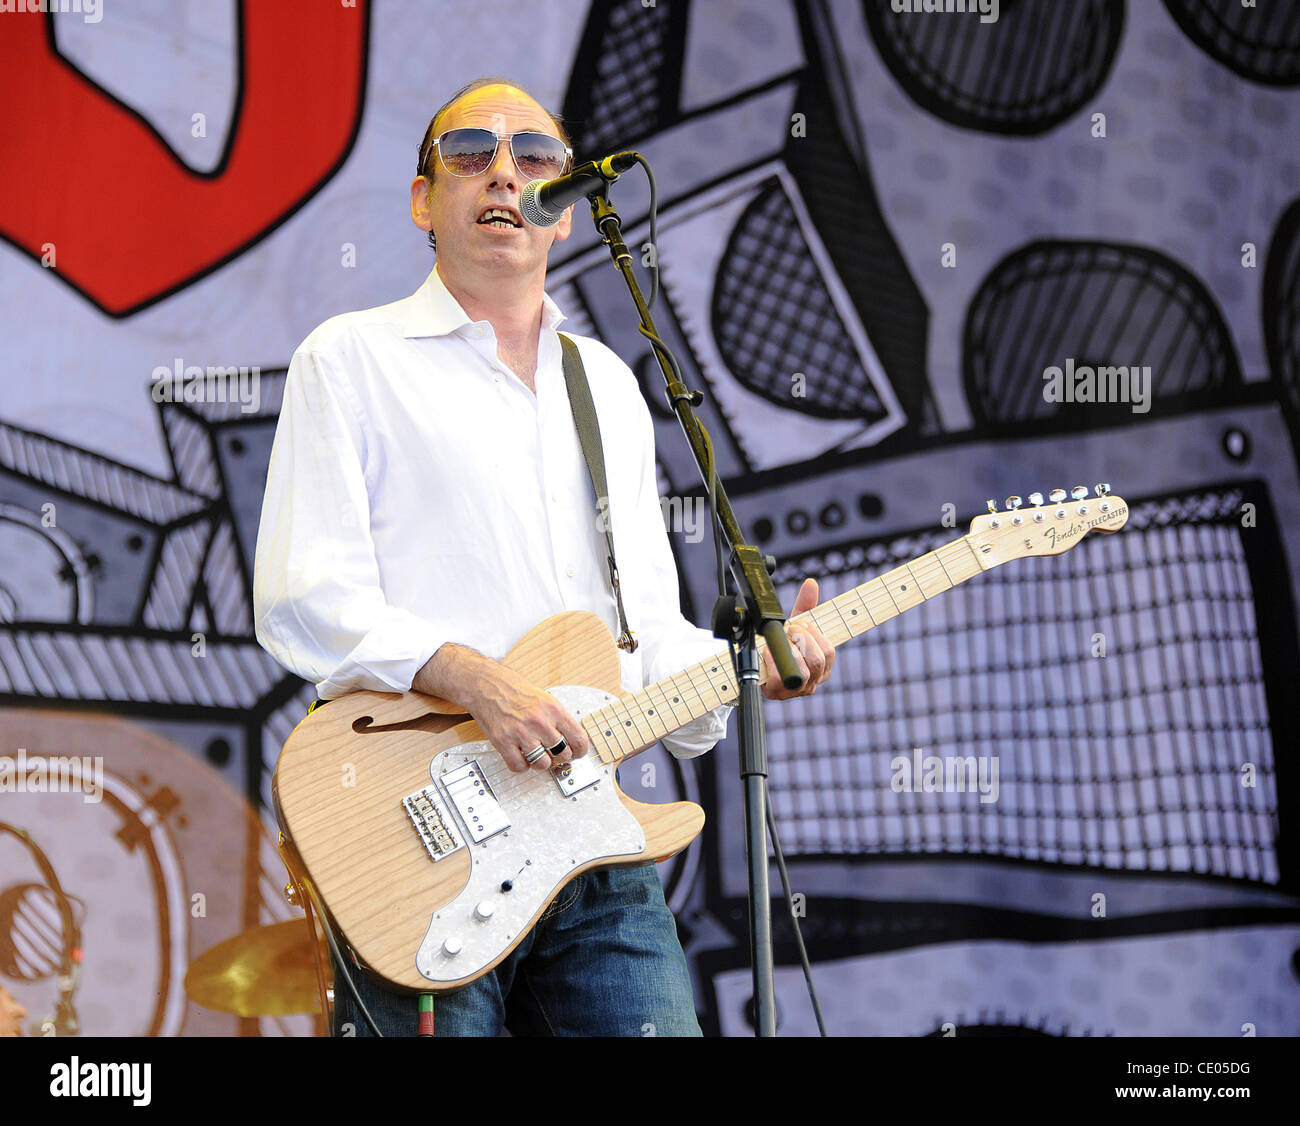 Aug 6, 2011 - Chicago, Illinois; USA - Singer / Guitarist MICK JONES of the band Big Audio Dynamite performs live - Stock Image